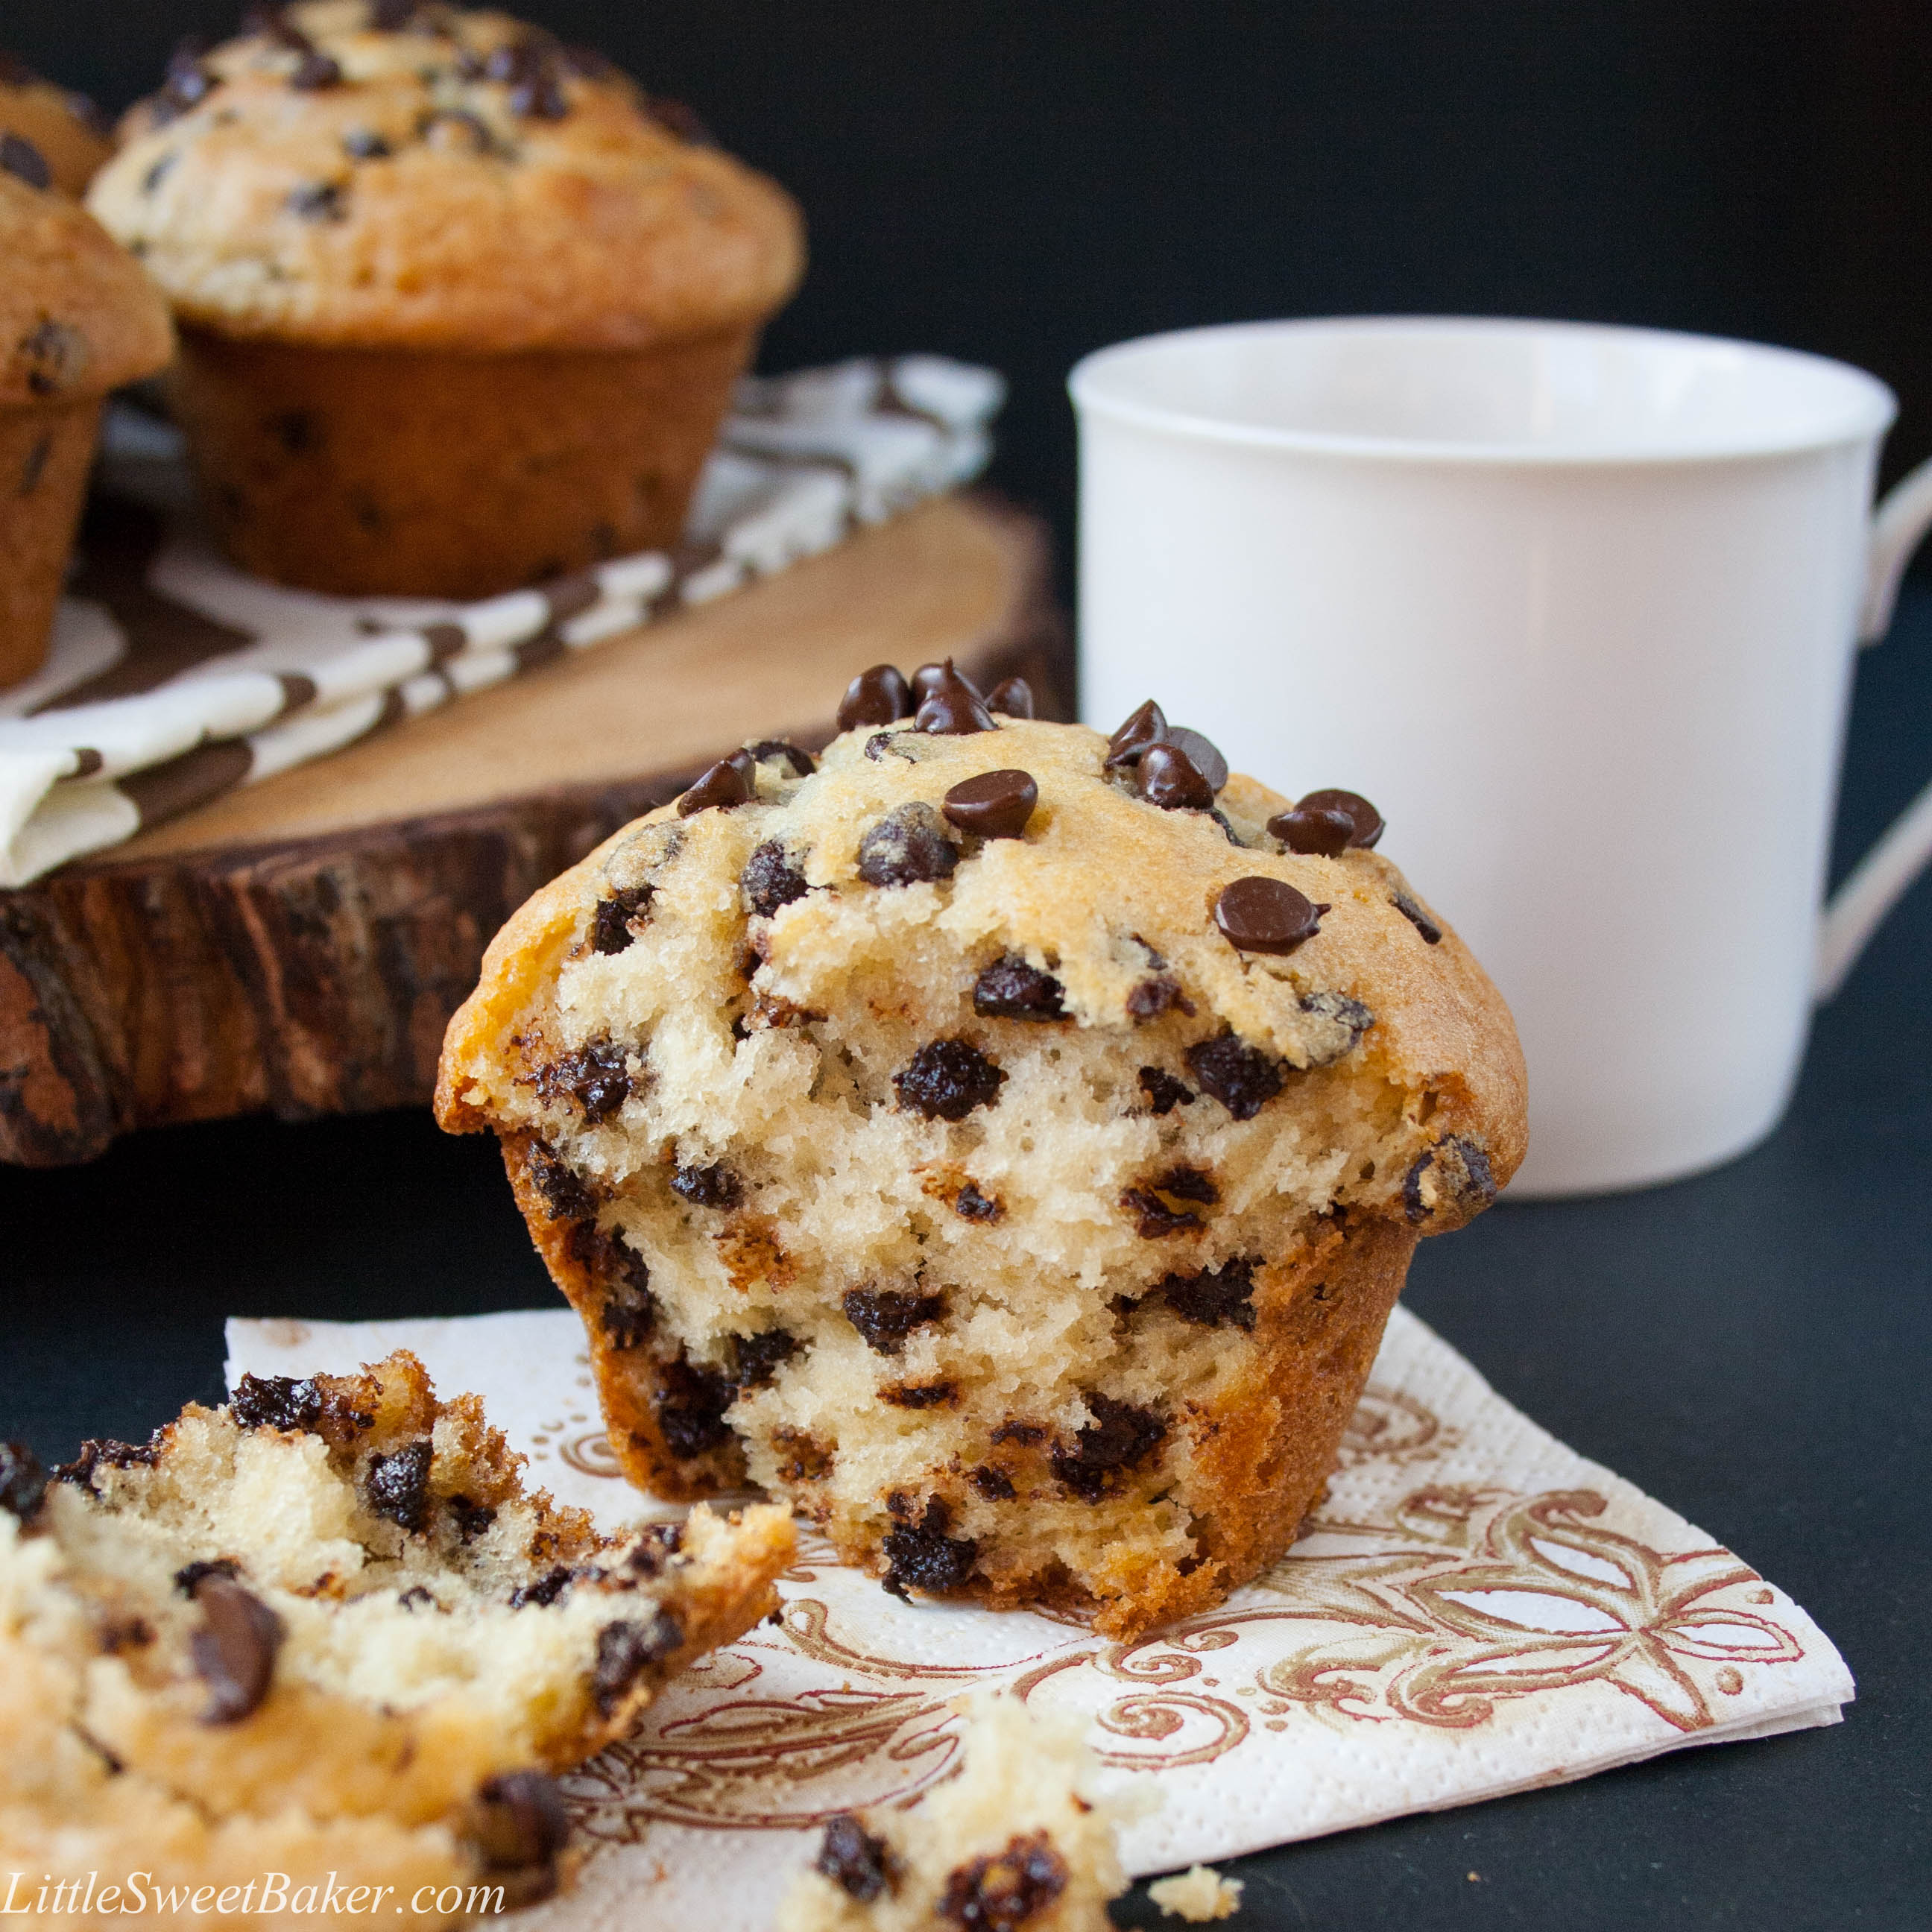 Cute Japanese Iphone Wallpaper Bakery Style Chocolate Chip Muffins Keeprecipes Your